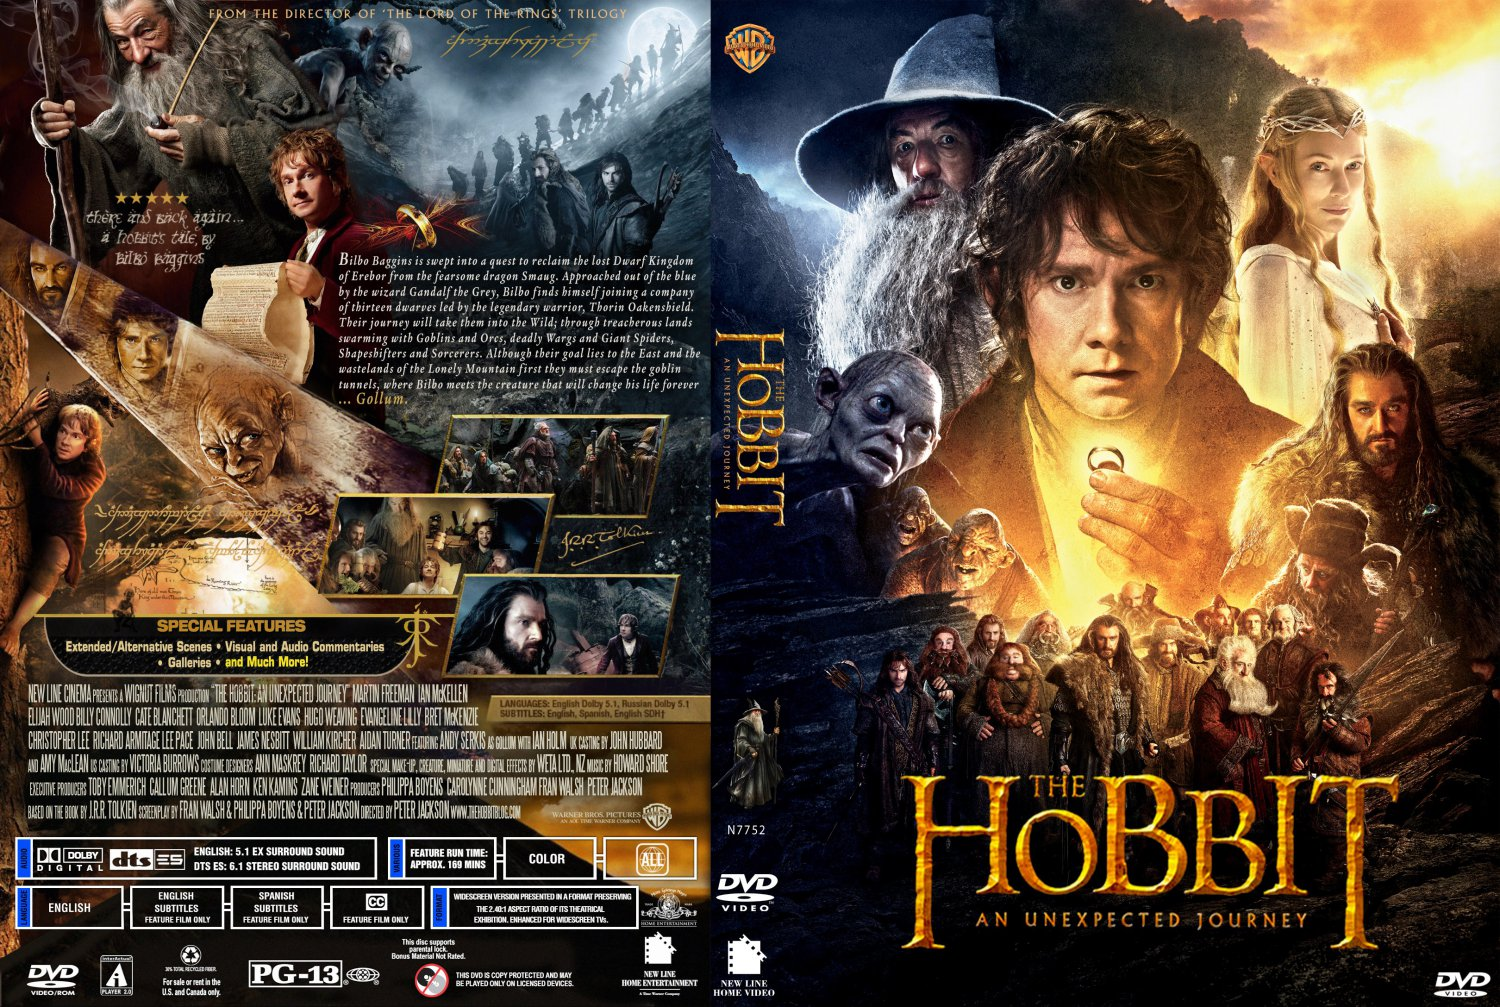 an unexpected journey the hobbit an unexpected journey custom2 date 03    The Hobbit An Unexpected Journey Dvd